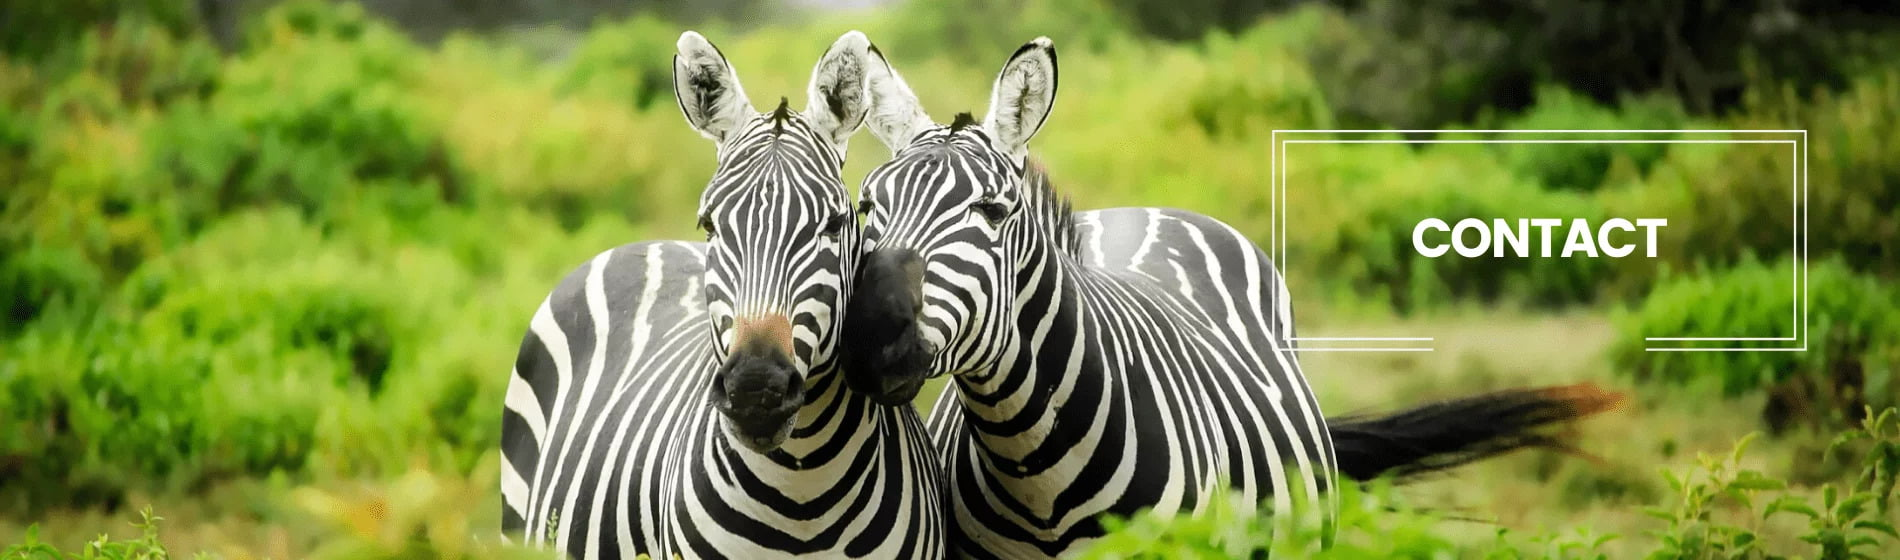 behavioural ecology group contact zebras